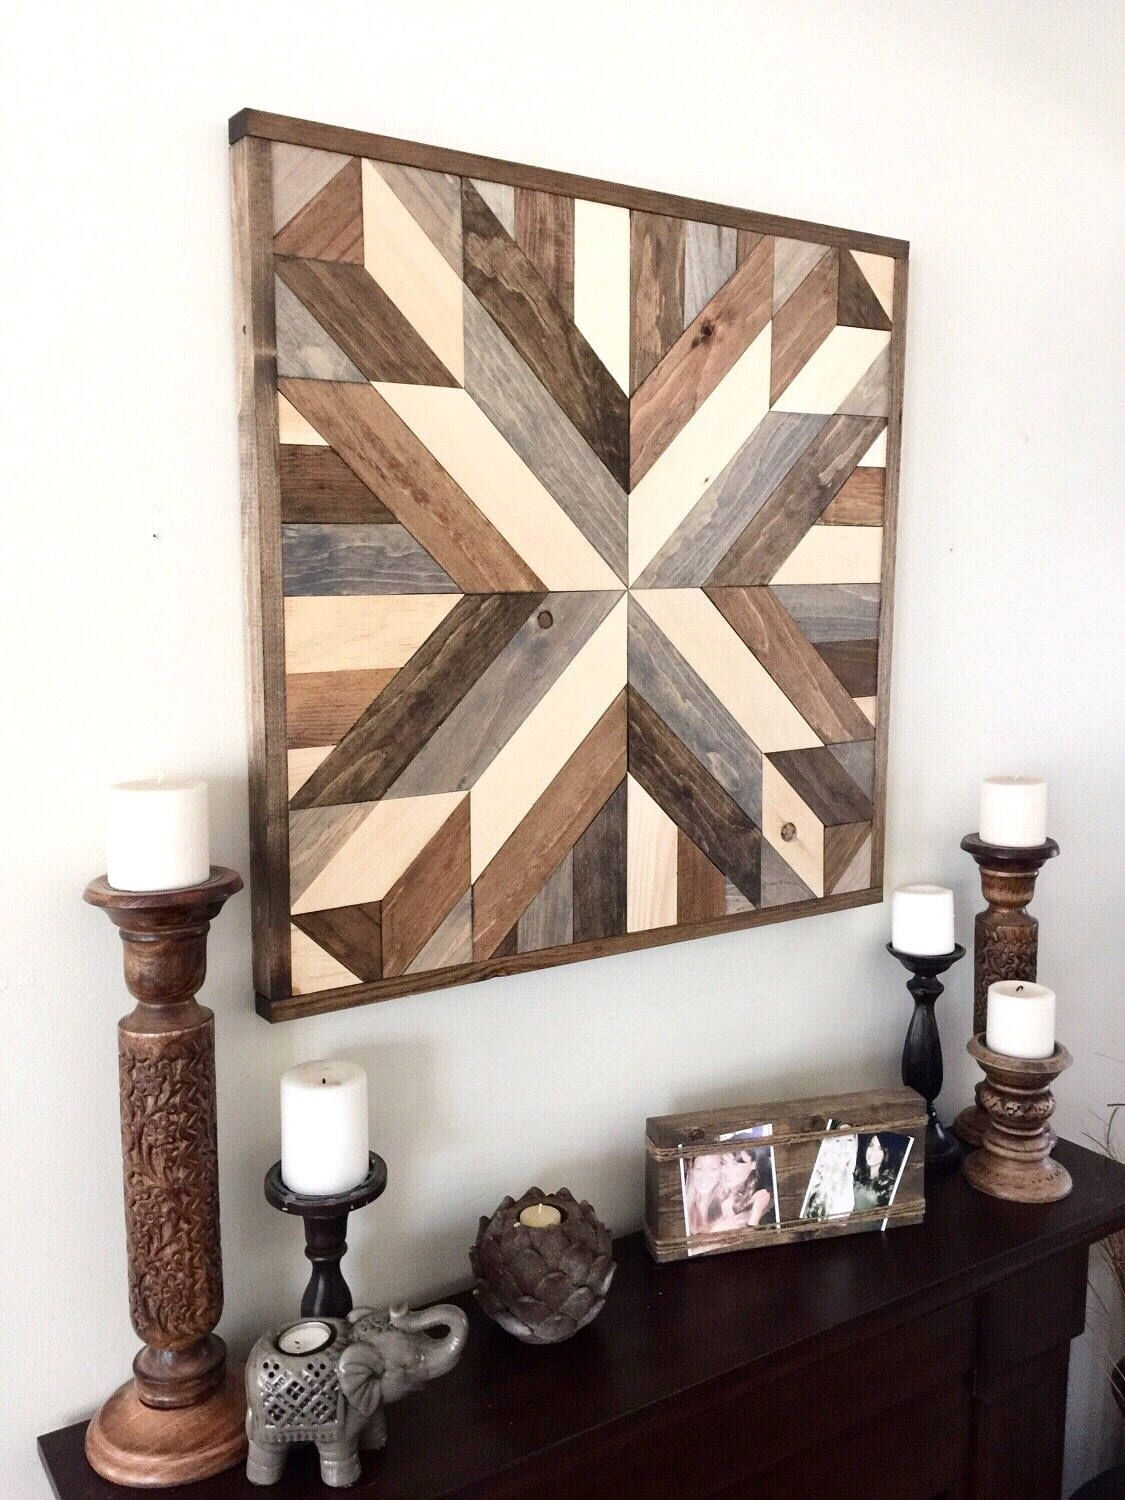 Reclaimed Wood Wall Art, Wood Art, Rustic Wall Decor, Farmhouse Regarding Best And Newest Reclaimed Wood Wall Art (View 11 of 15)